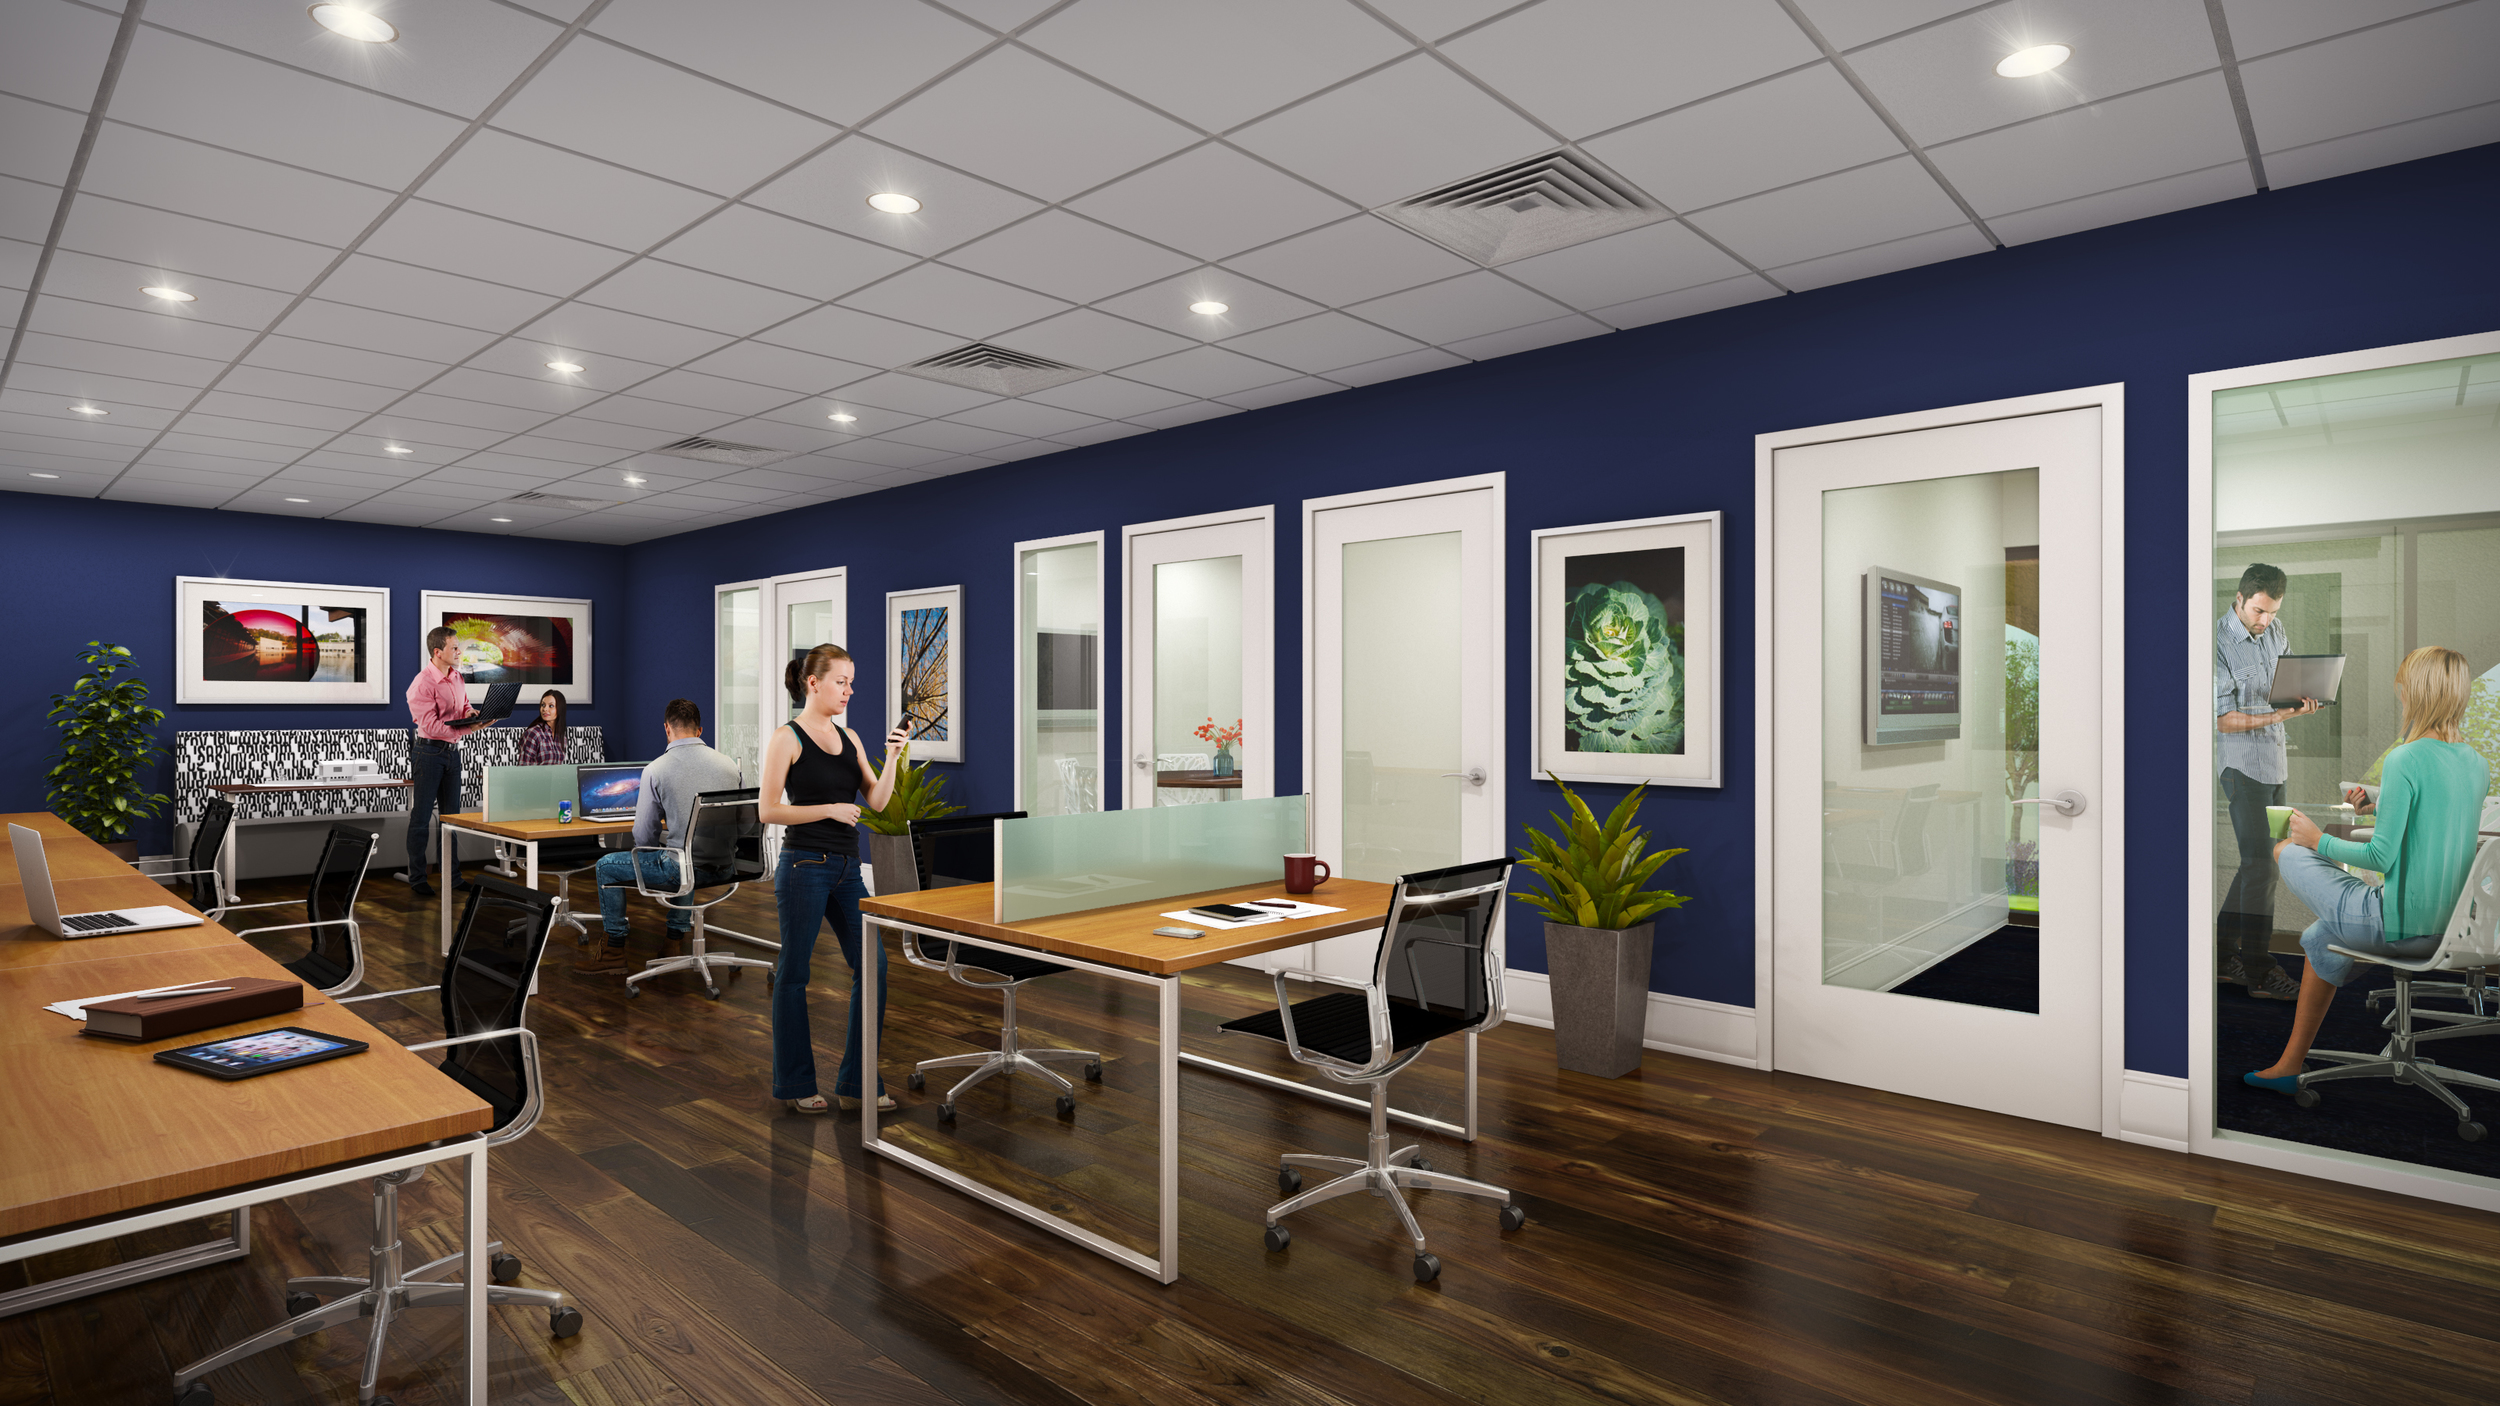 STUDY SPACE  rendering by cagleart.com